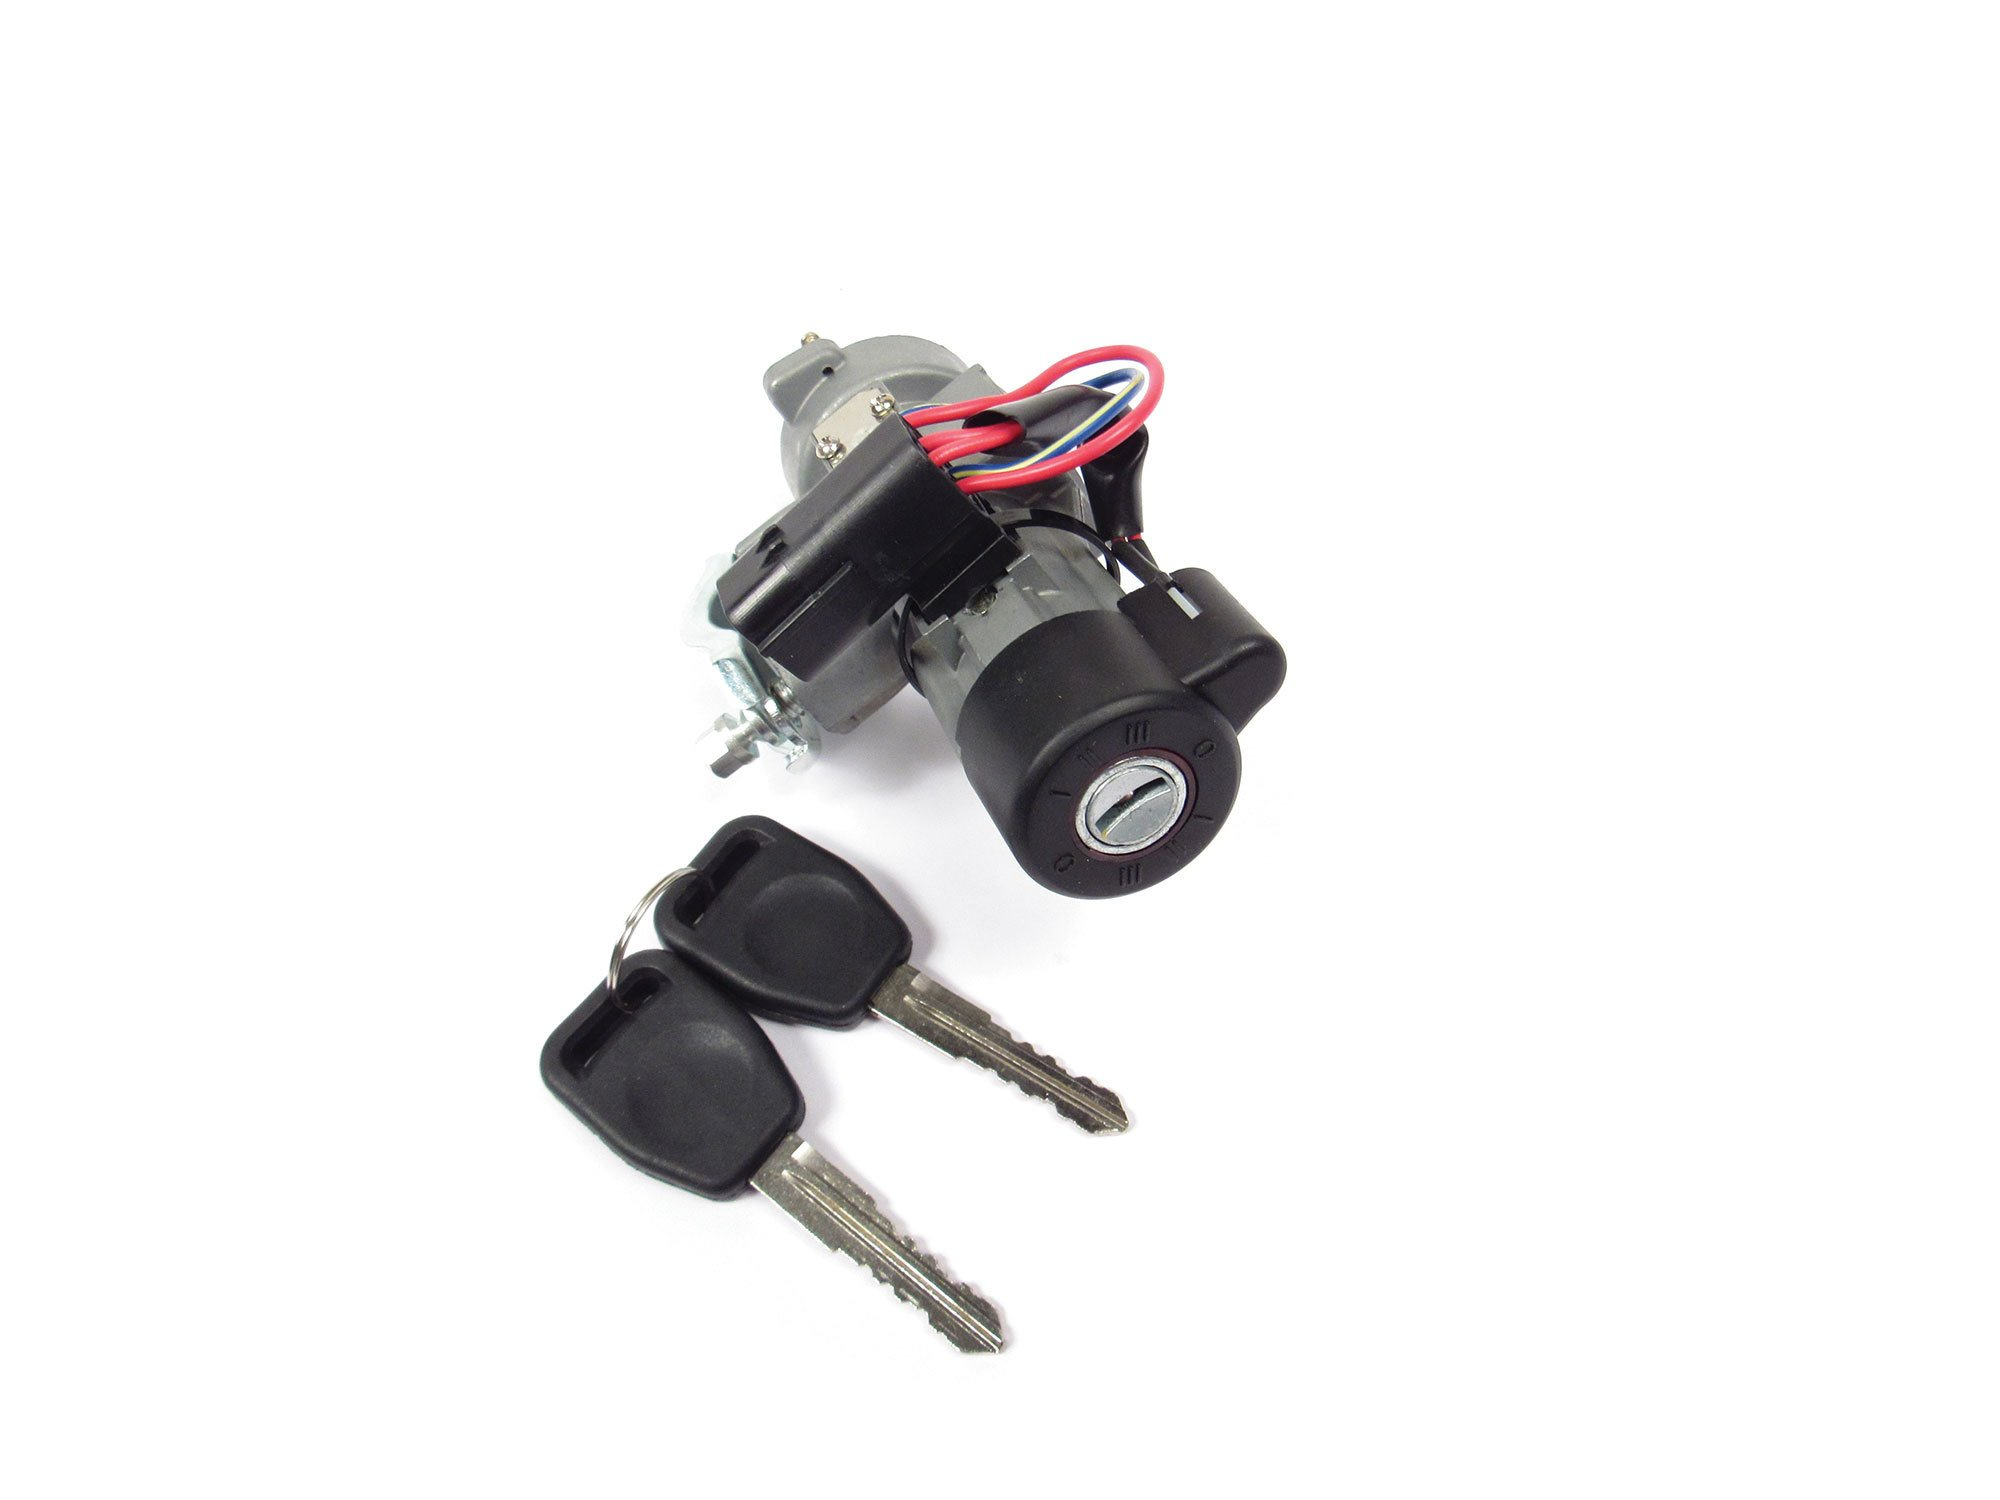 amazon com land rover qrf000080 ignition lock switch retrofit kitamazon com land rover qrf000080 ignition lock switch retrofit kit with keys for discovery 2 automotive